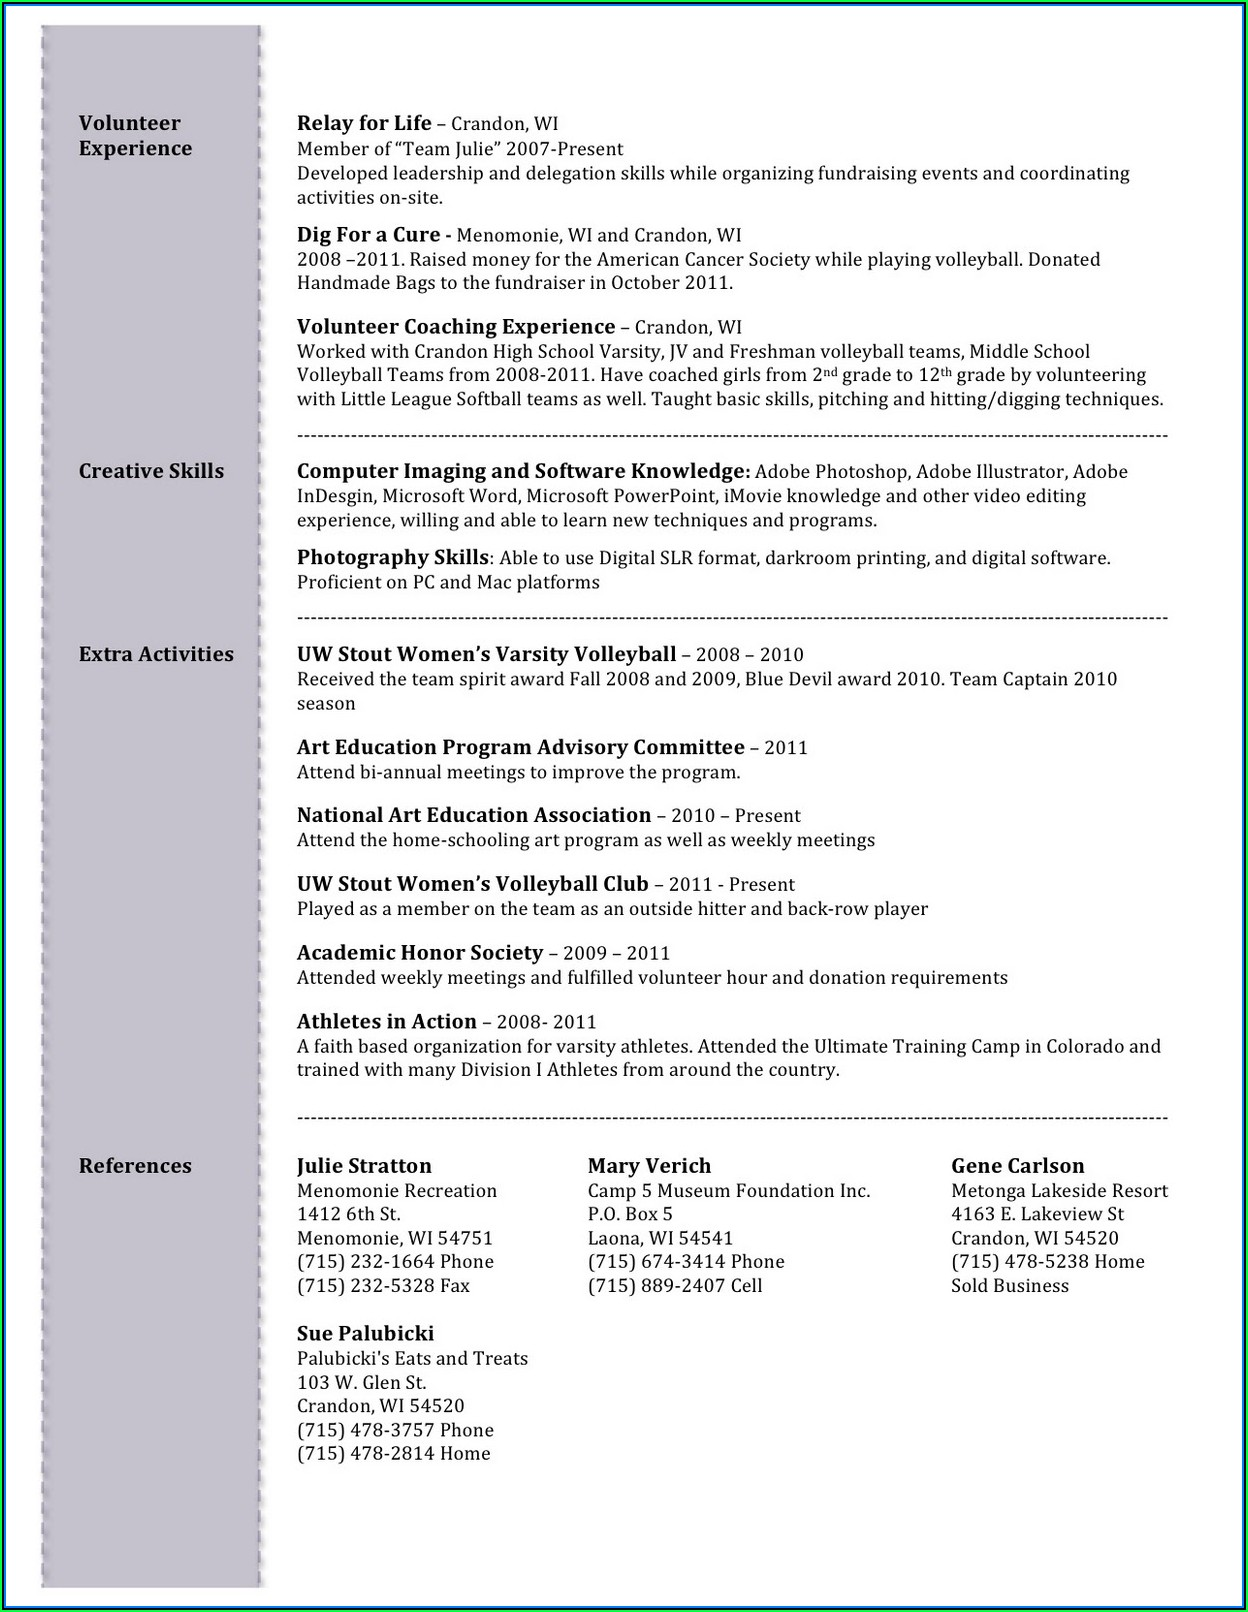 A Better Resume Service Lakeview